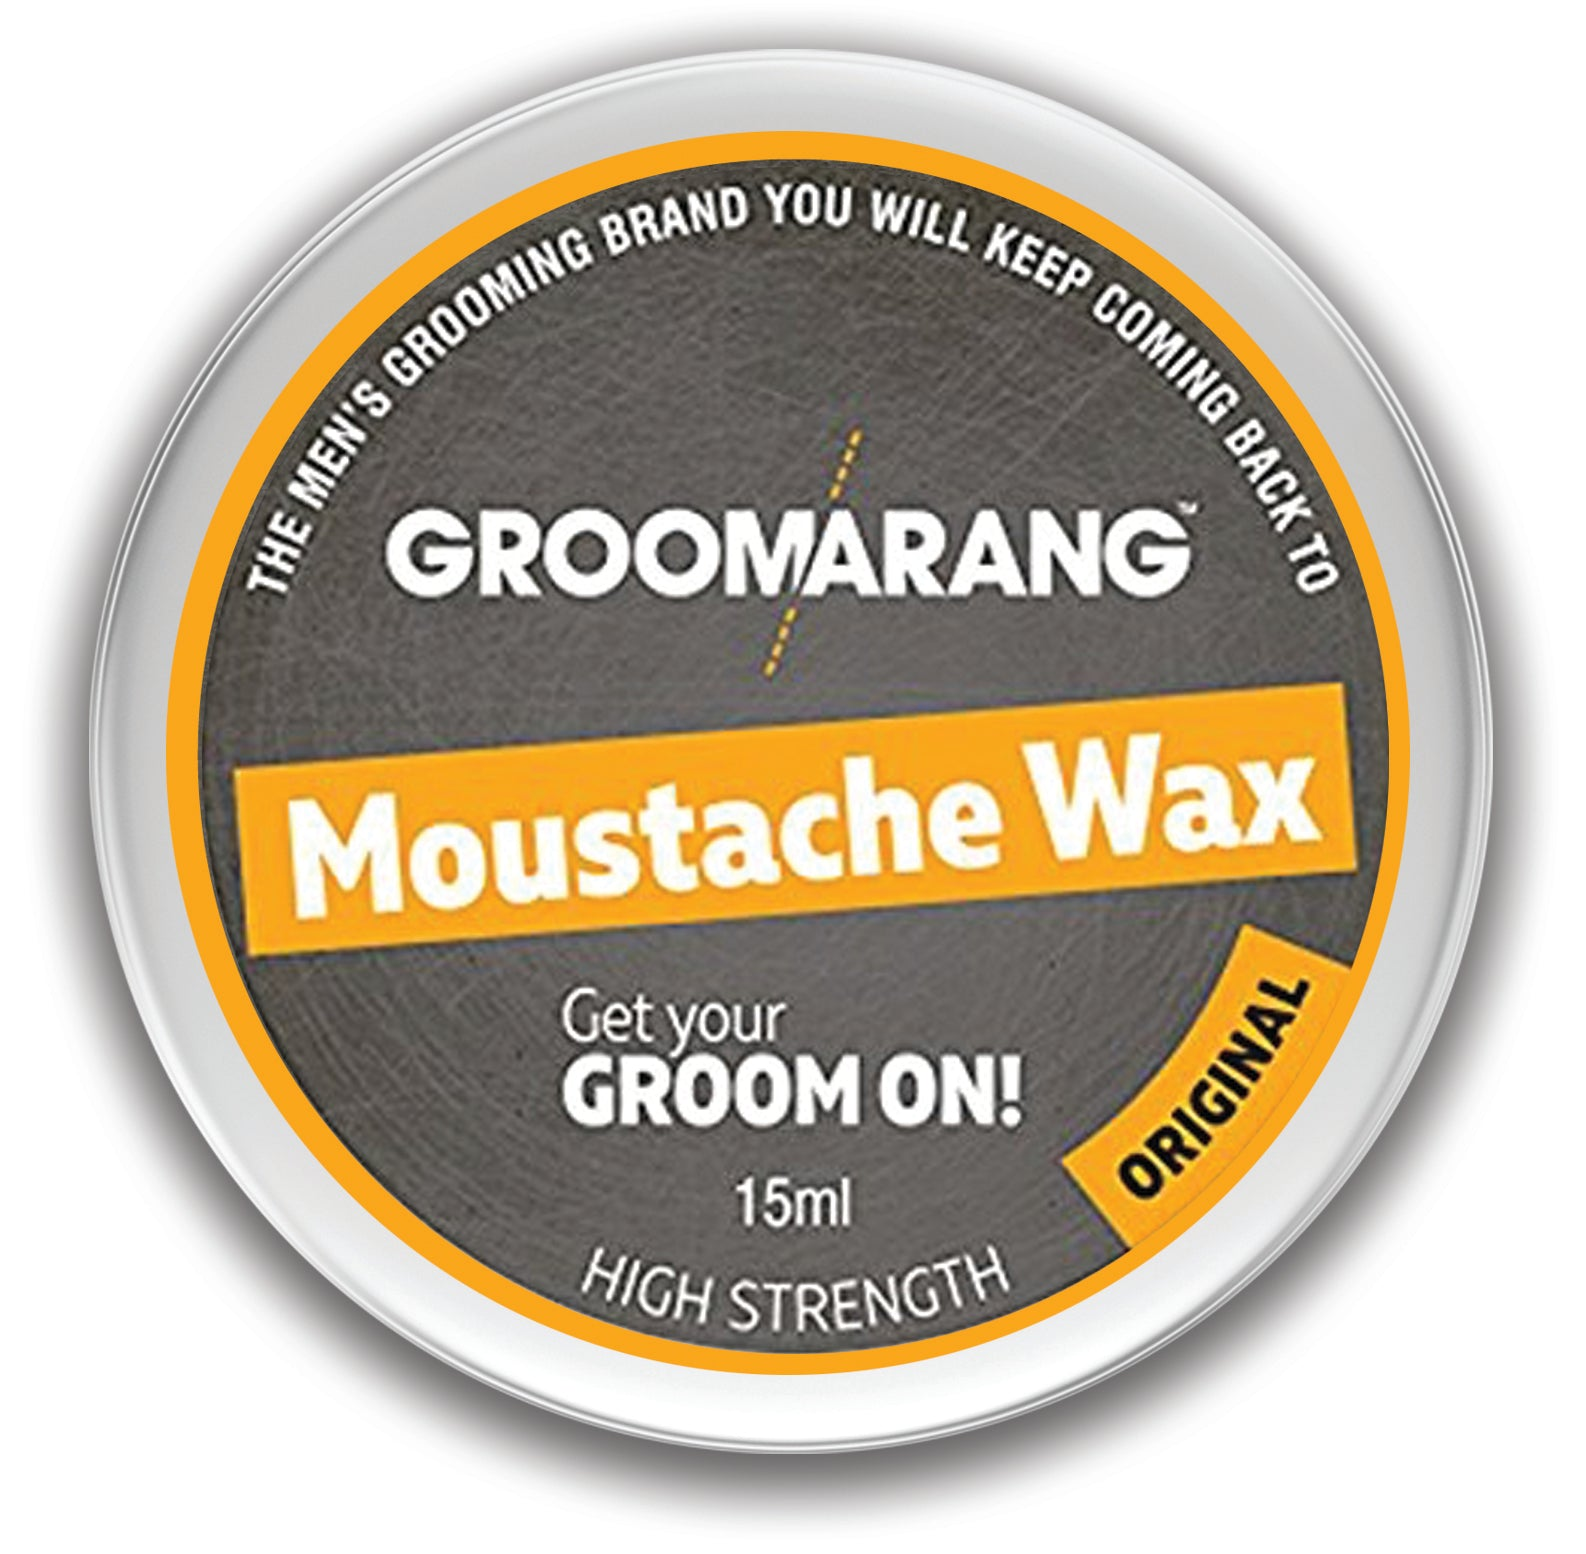 Groomarang Original Moustache Wax, Hair Styling Products - Image 2